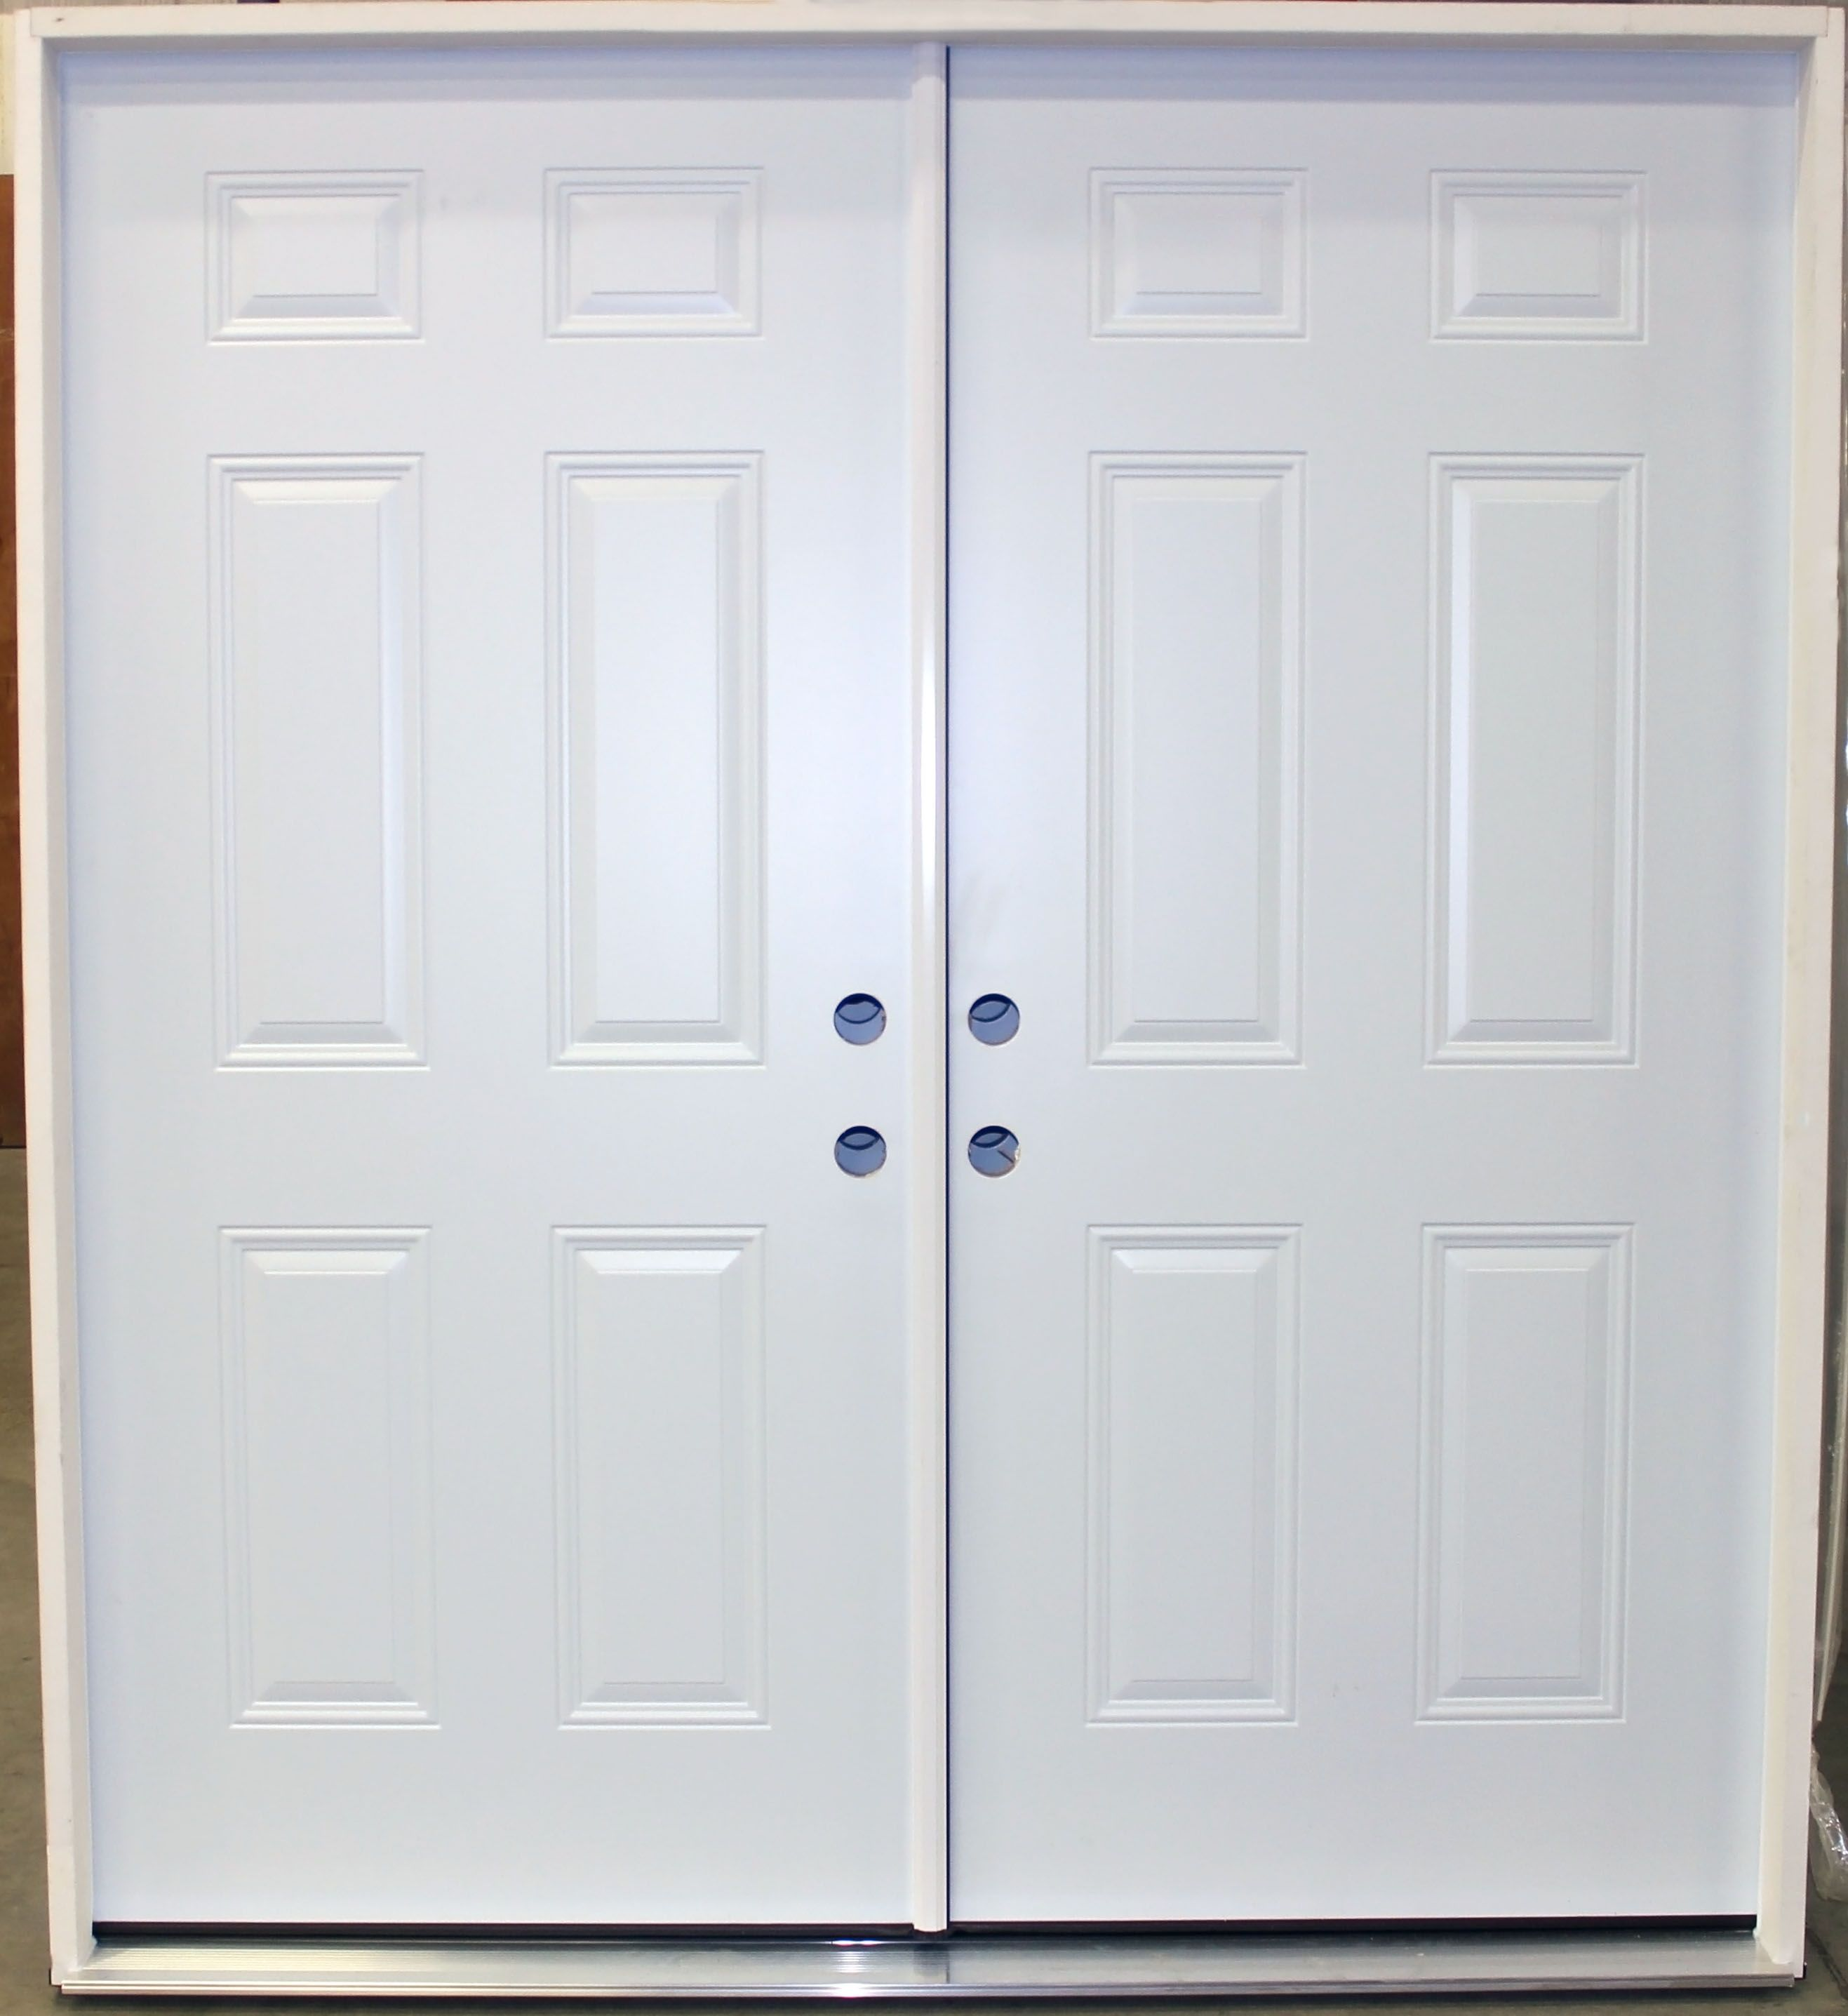 Double exterior door for shed thefallguyediting